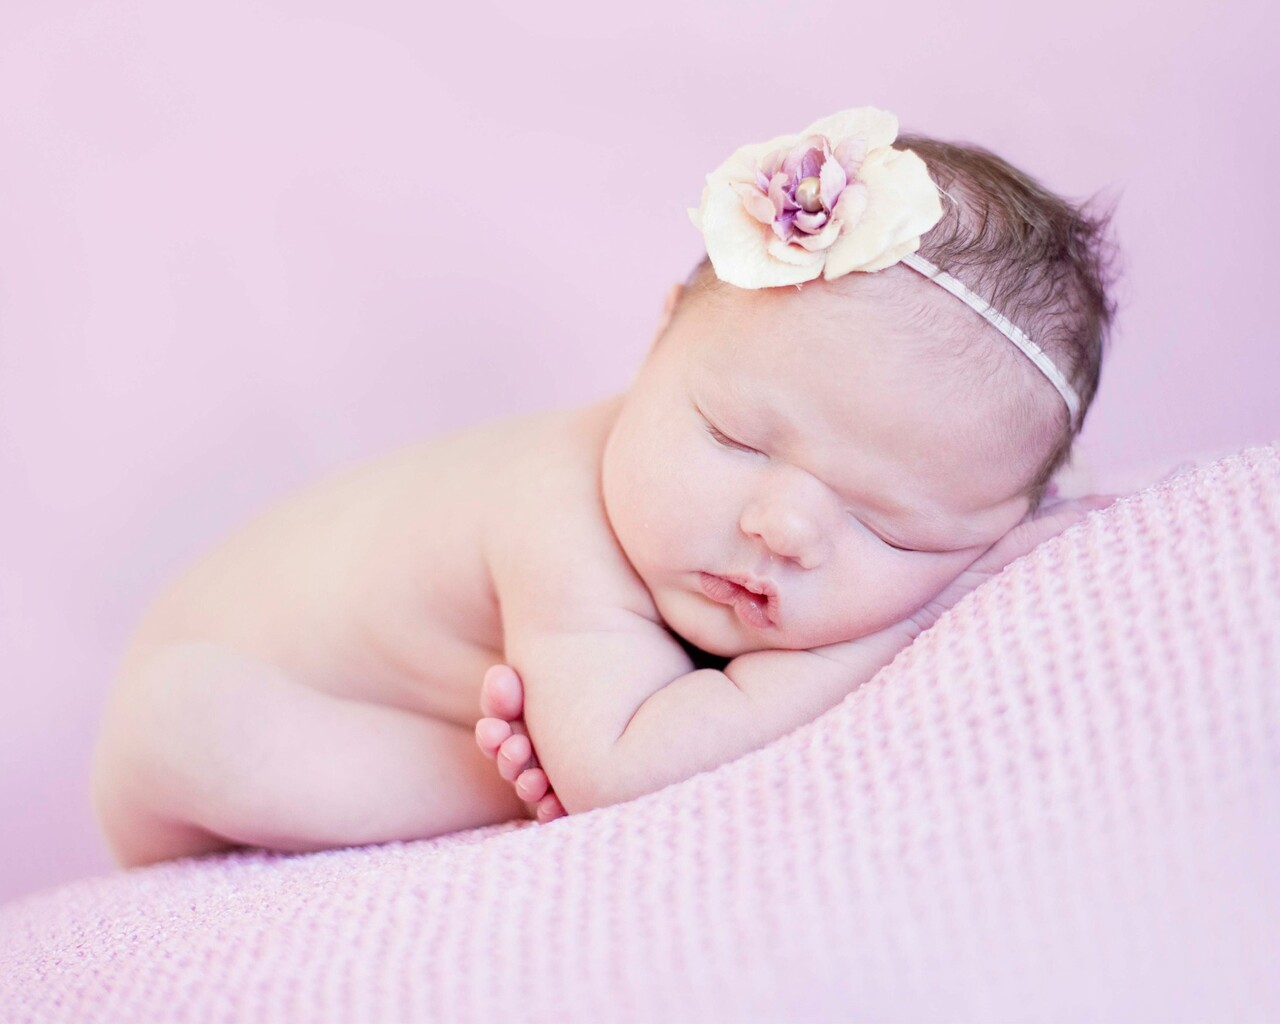 1280x1024 Newborn Baby Cute 1280x1024 Resolution Hd 4k Wallpapers Images Backgrounds Photos And Pictures